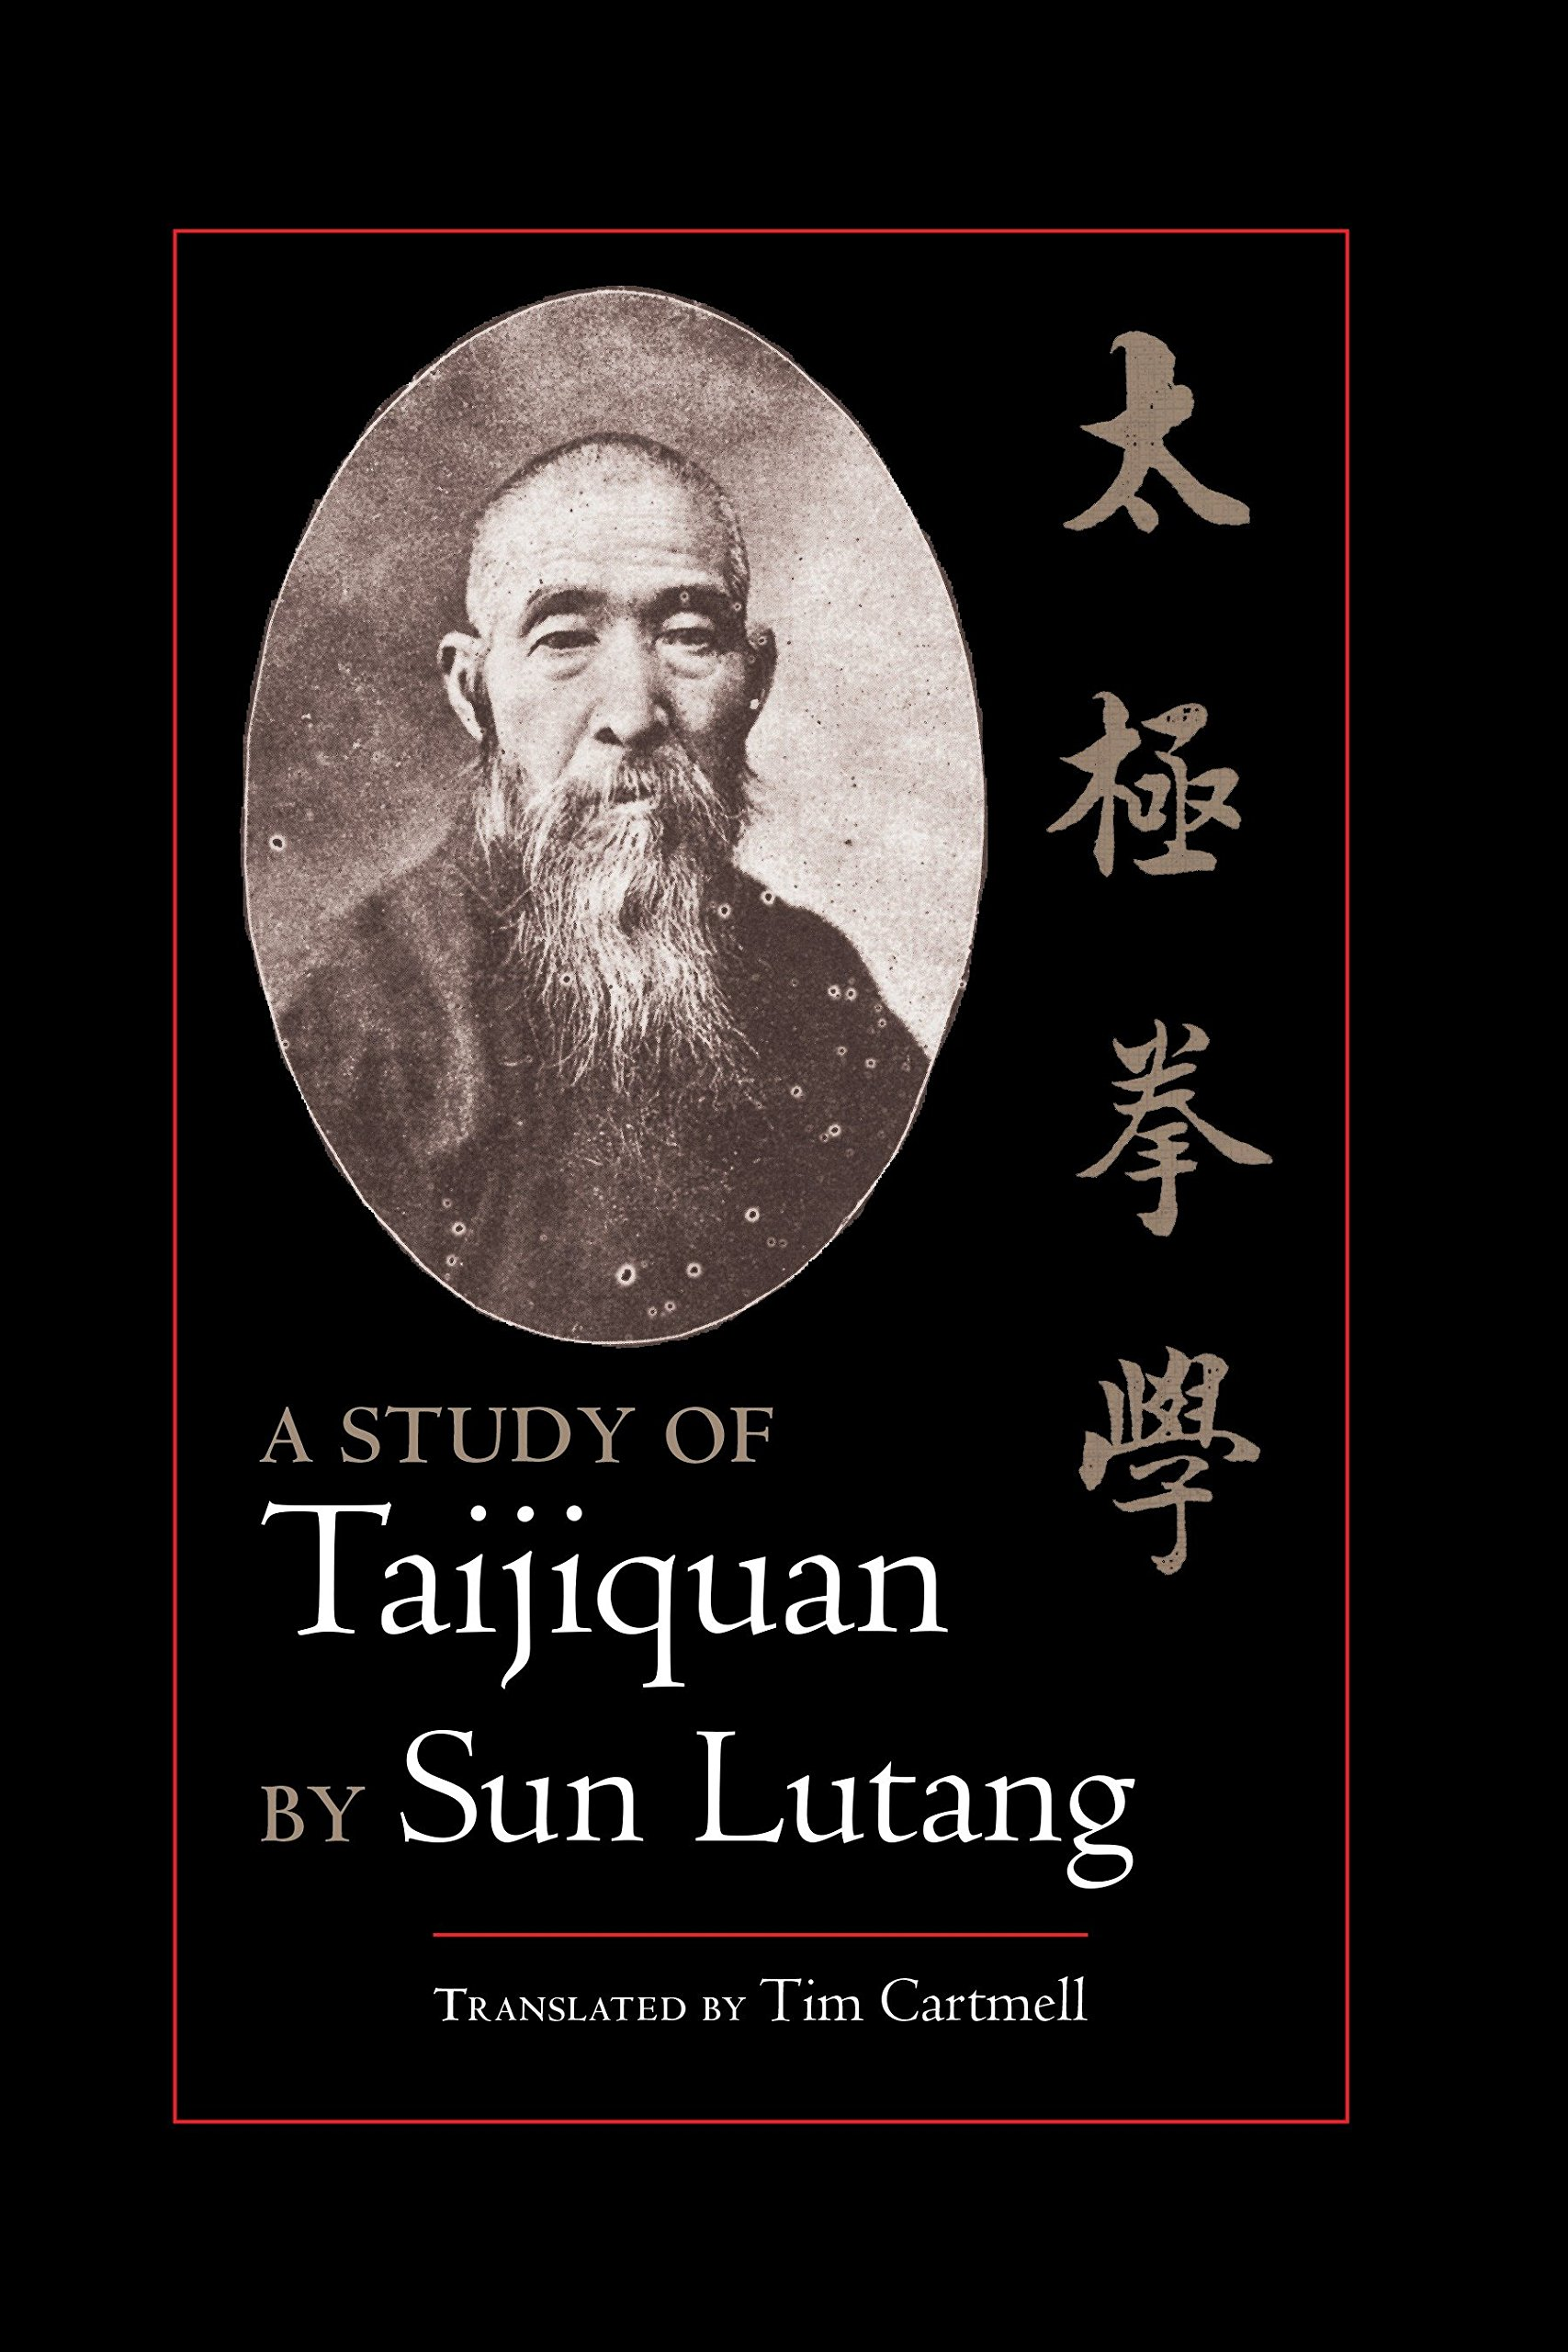 A Study of Taijiquan: Sun Lutang, Tim Cartmell: 9781556434624: Amazon.com:  Books